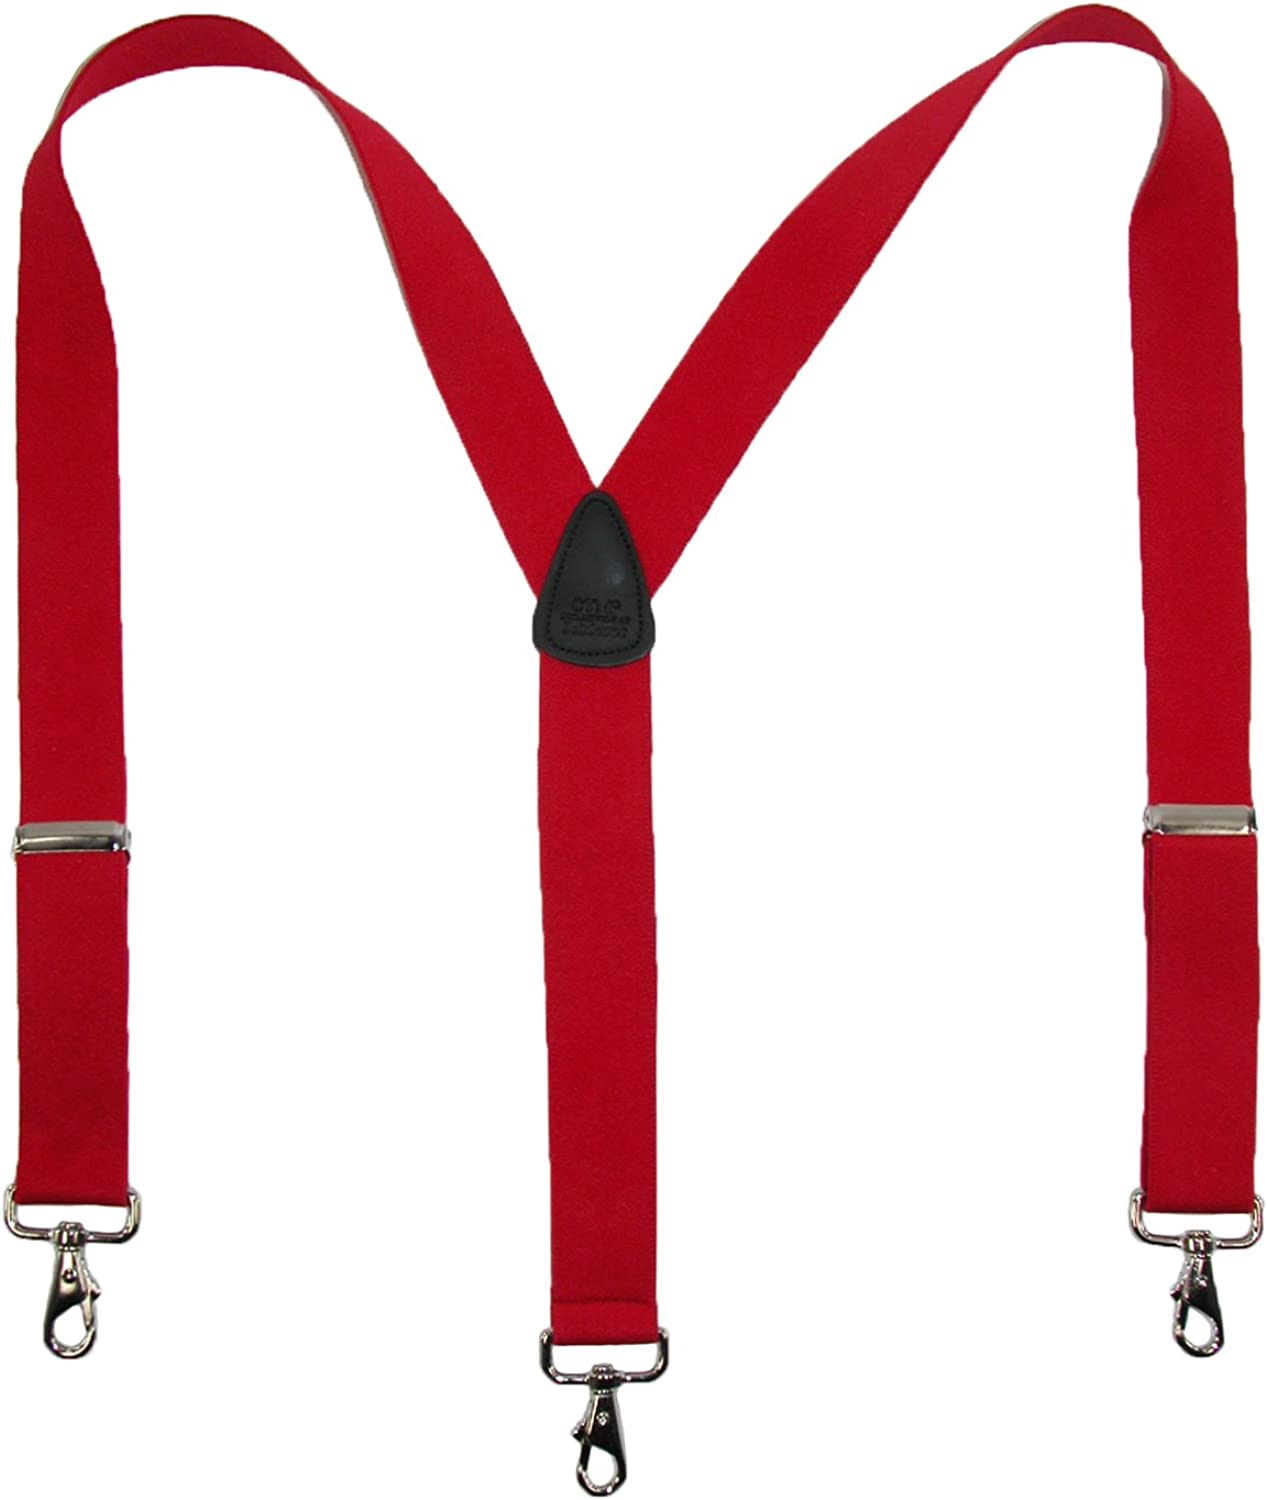 CTM Mens Elastic Solid Color Suspender with Metal Swivel Hook Clip End White